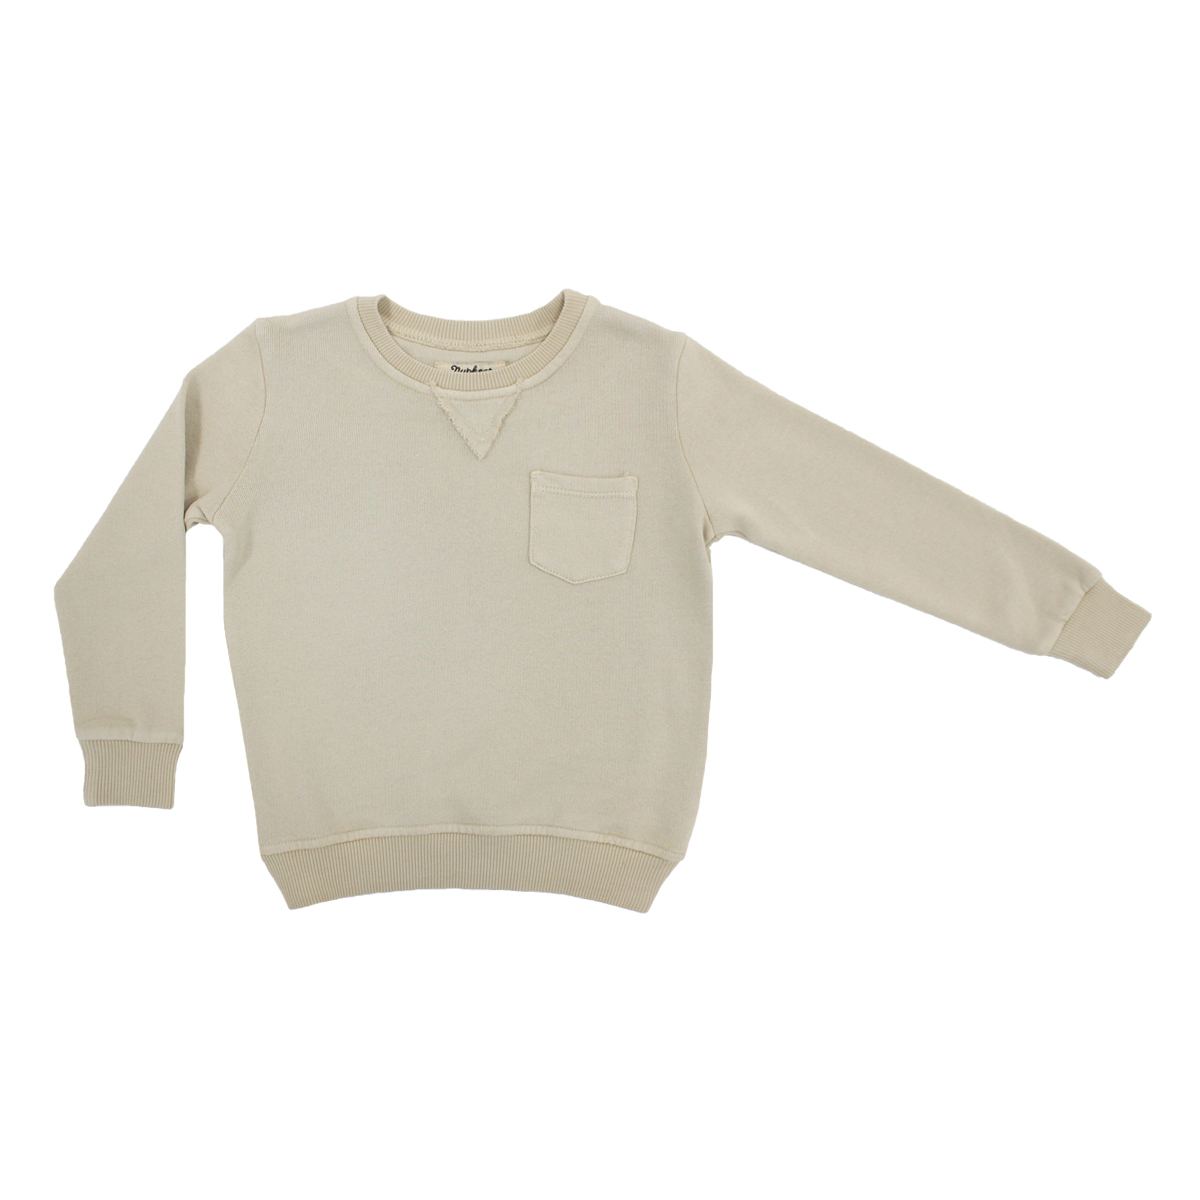 Nupkeet Unicco Sweatshirt in Beige